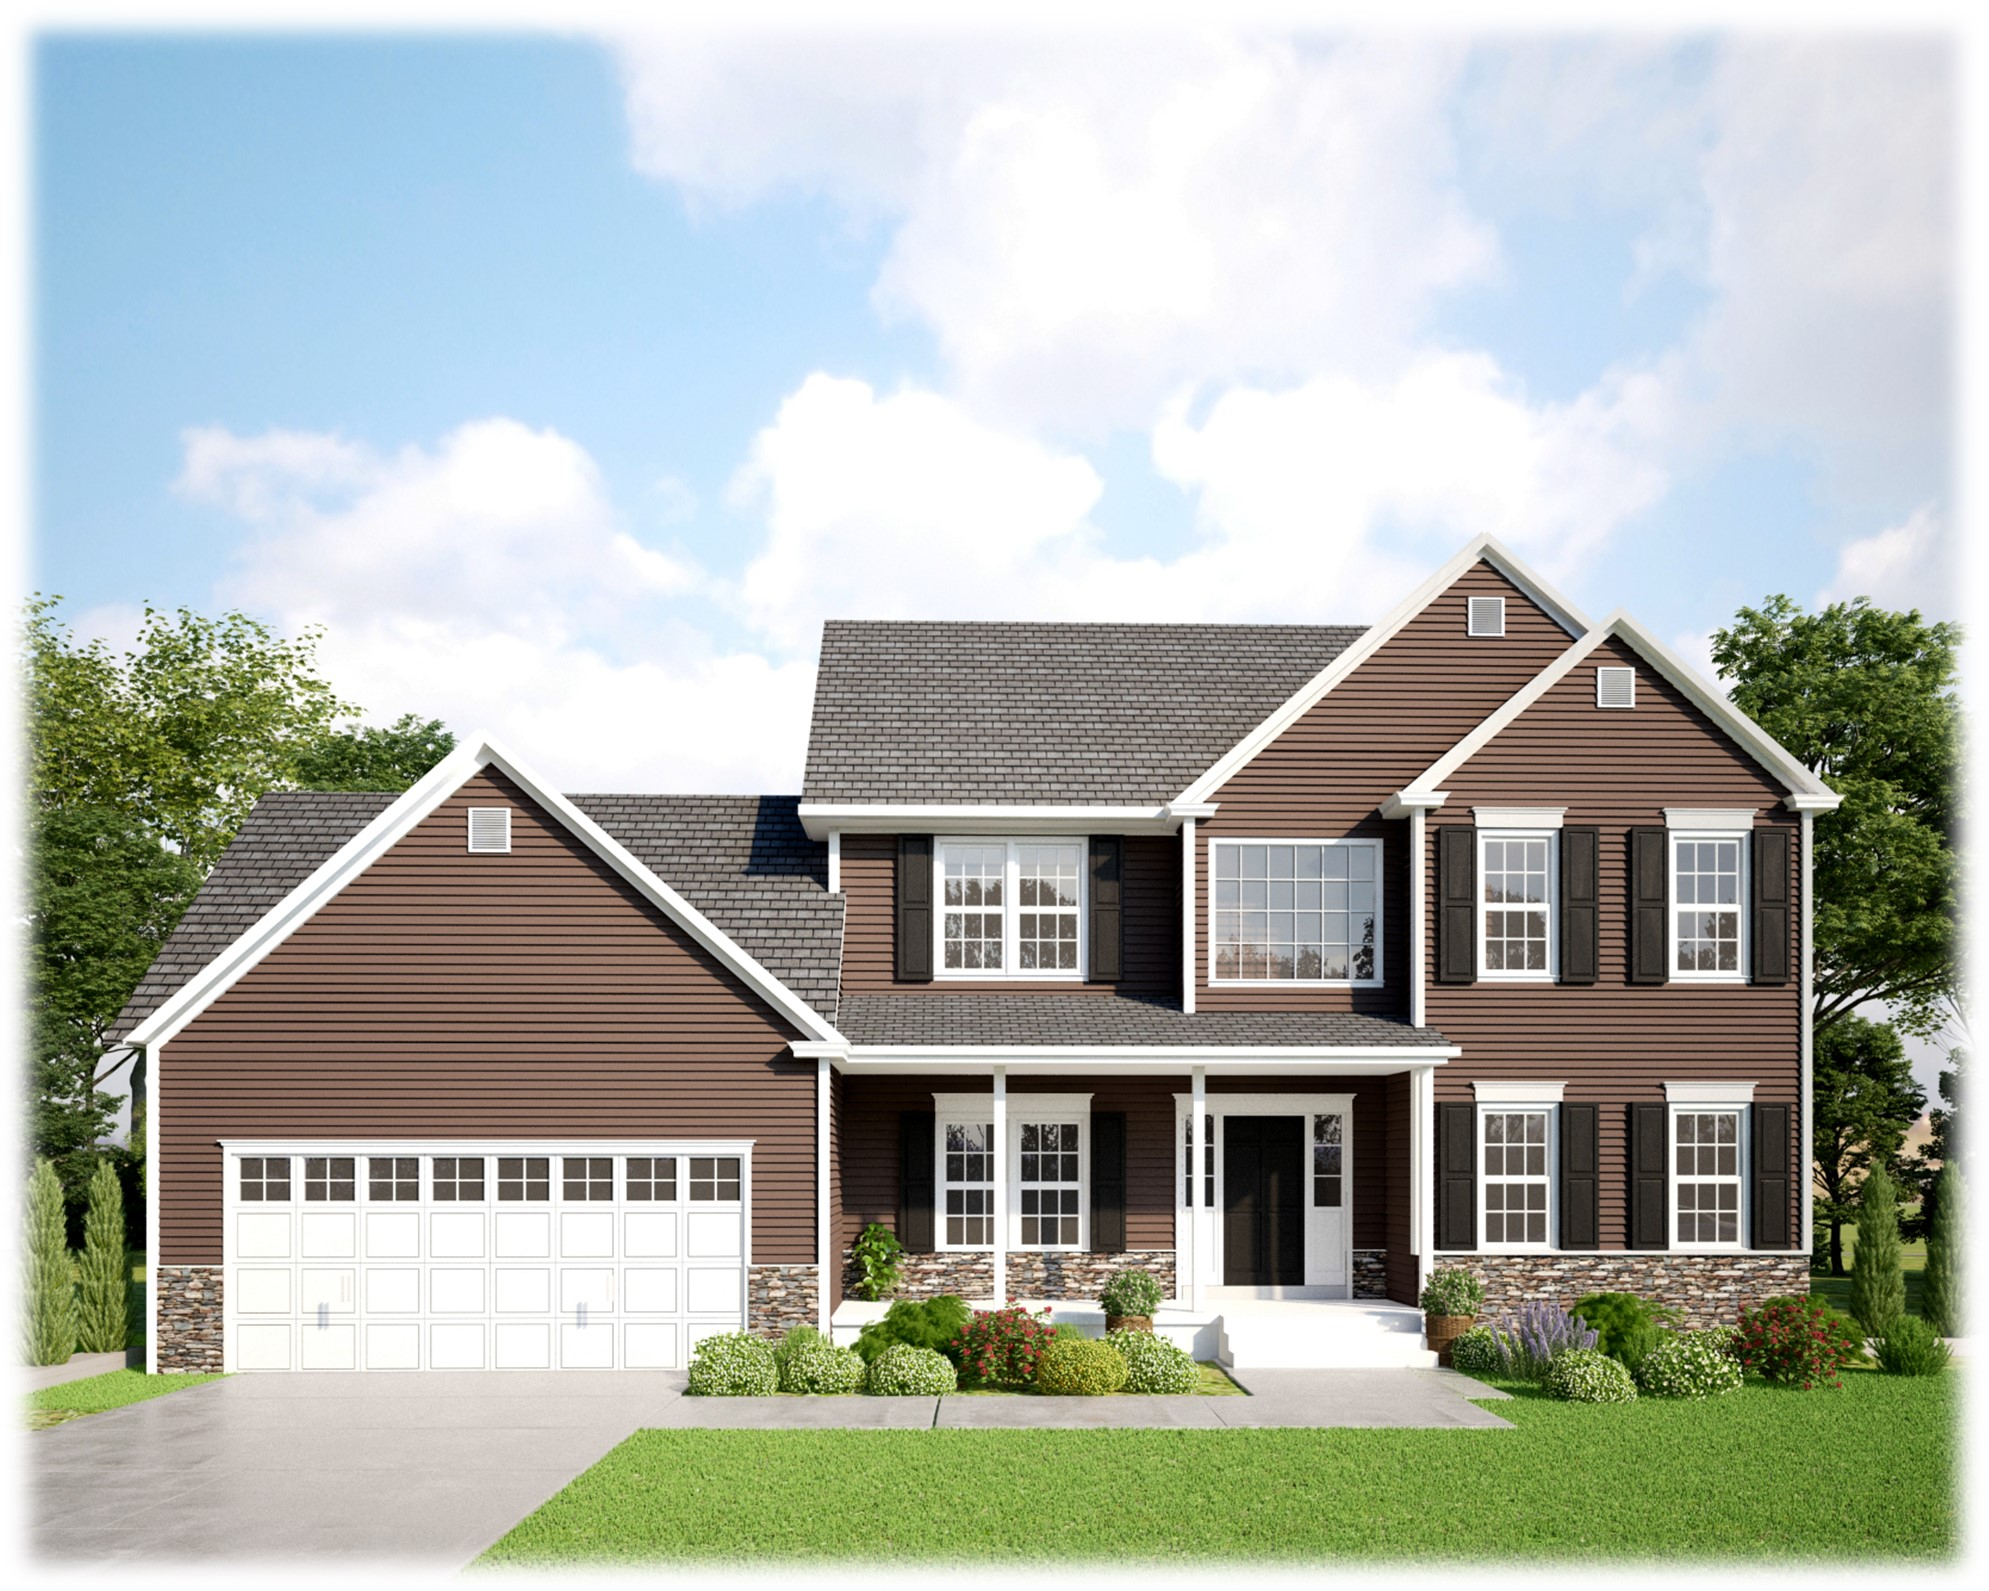 Engineered Exterior Photo of a Two-Story Home - Brown with Stone and Black Shutters